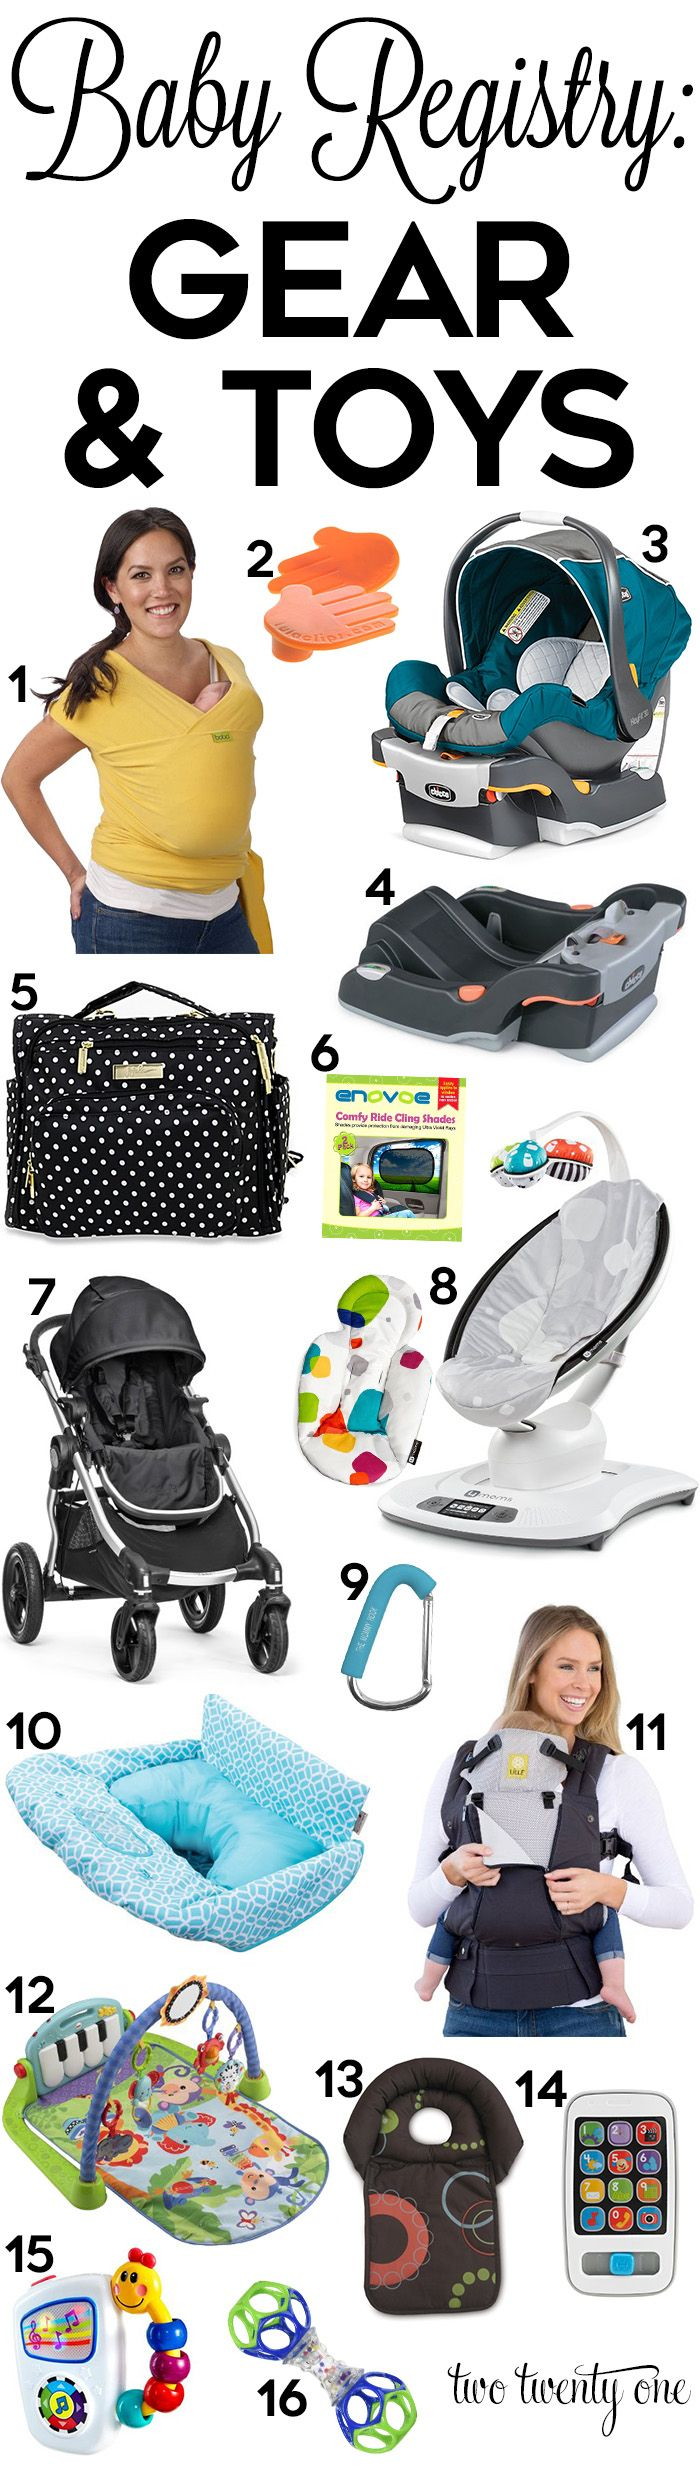 Gear and toys to put on your baby registry! Great ideas!